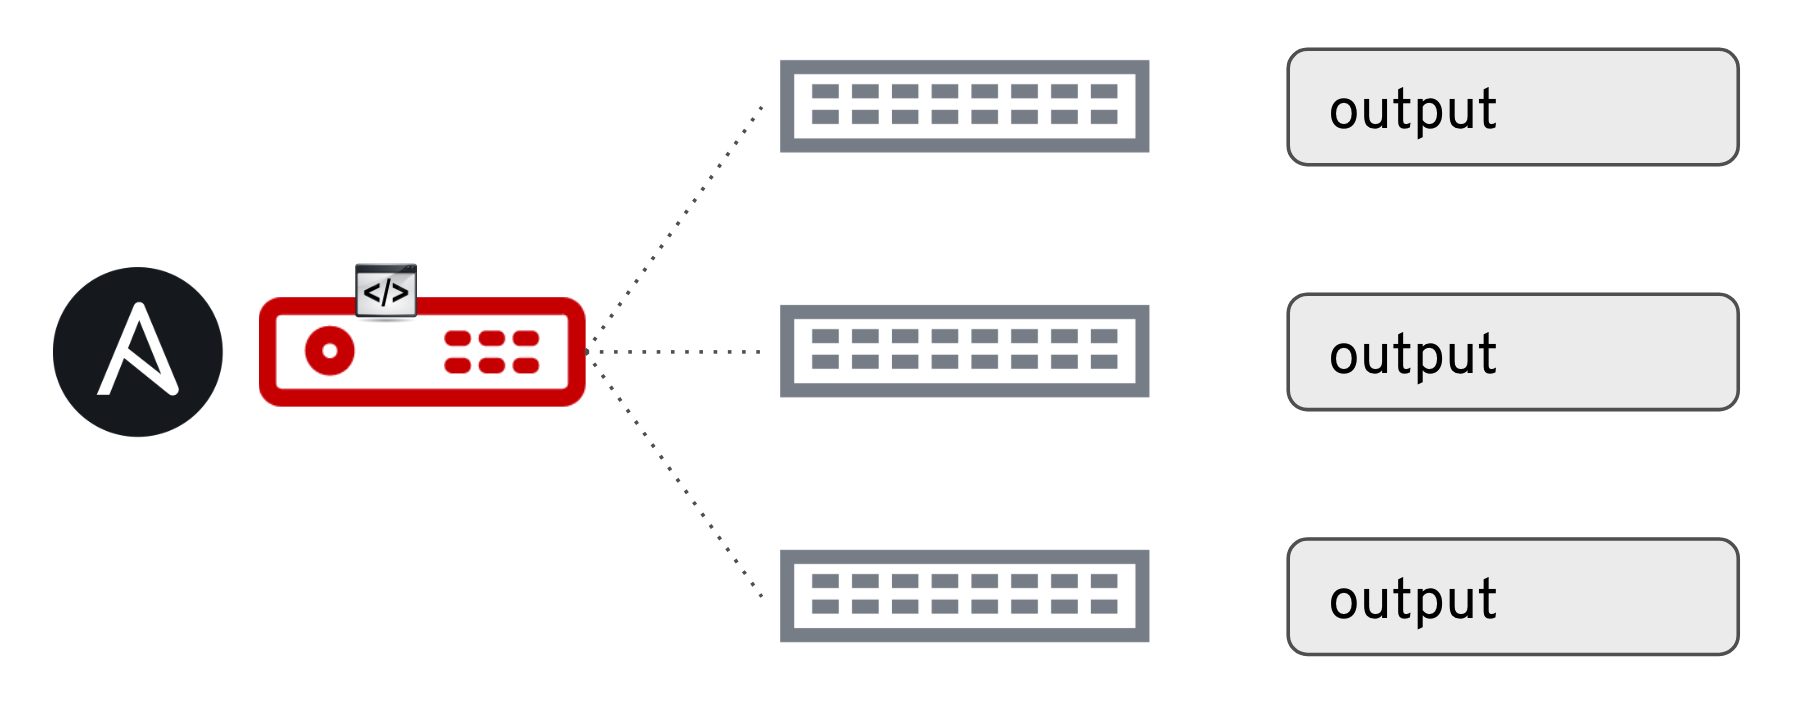 Ansible-Multiple-Network-Device-Run